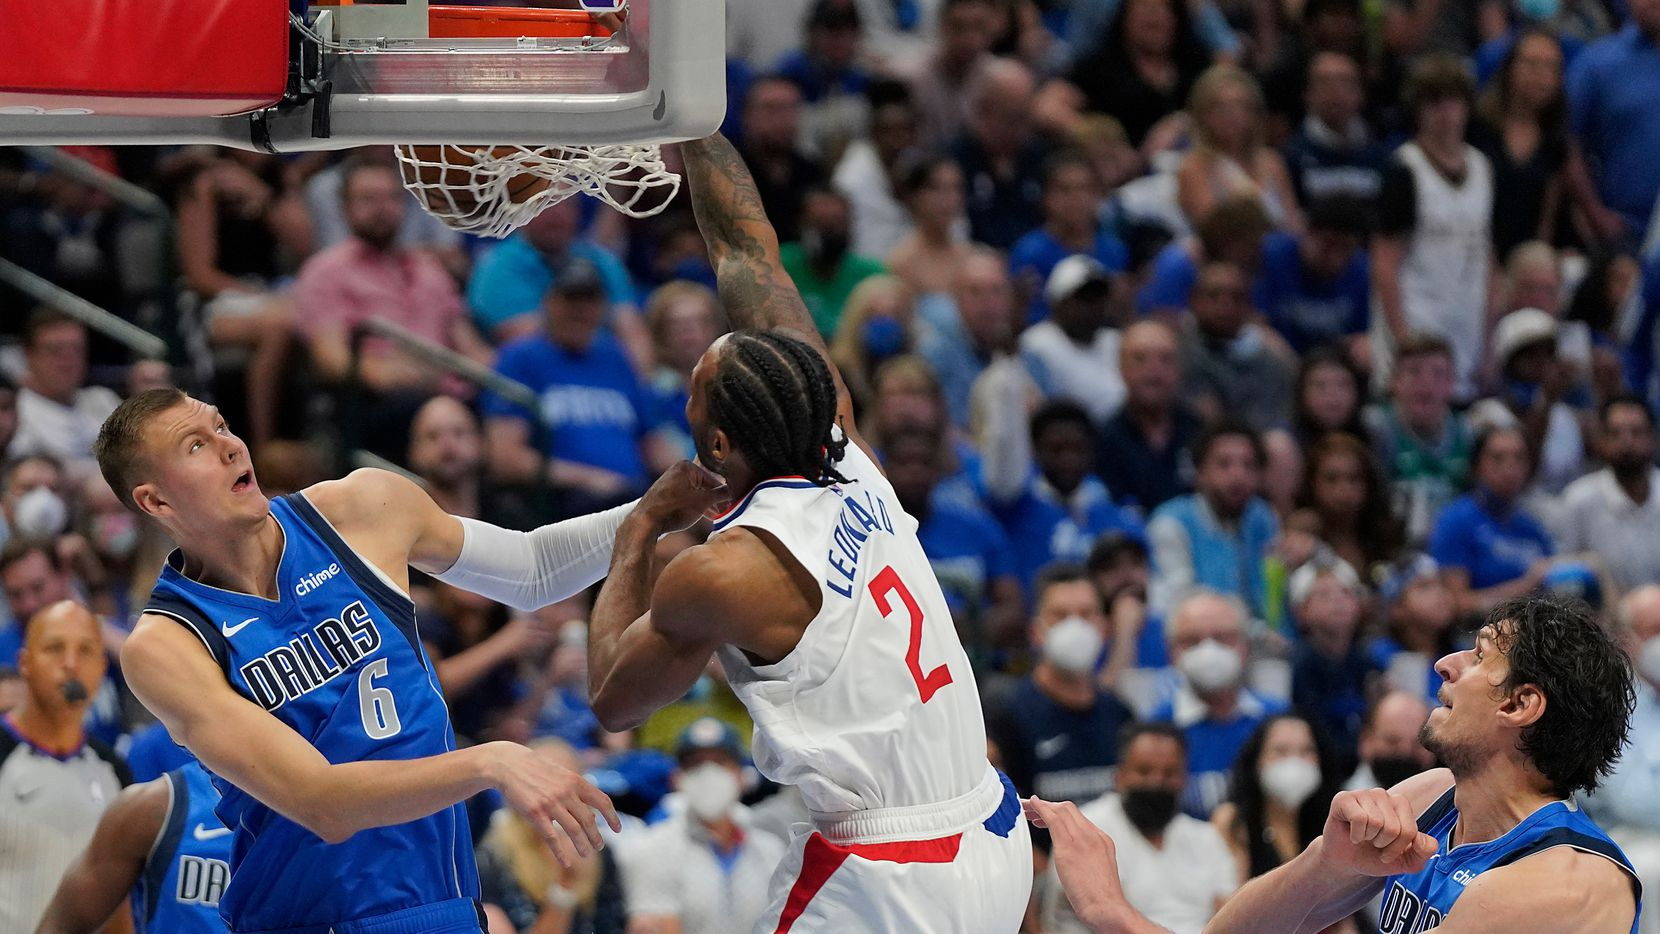 LA Clippers forward Kawhi Leonard (2) dunks the ball past Dallas Mavericks center Kristaps Porzingis (6) during the second half of an NBA playoff basketball game at the American Airlines Center on Friday, June 4, 2021, in Dallas. The Clippers won the game 104-97.